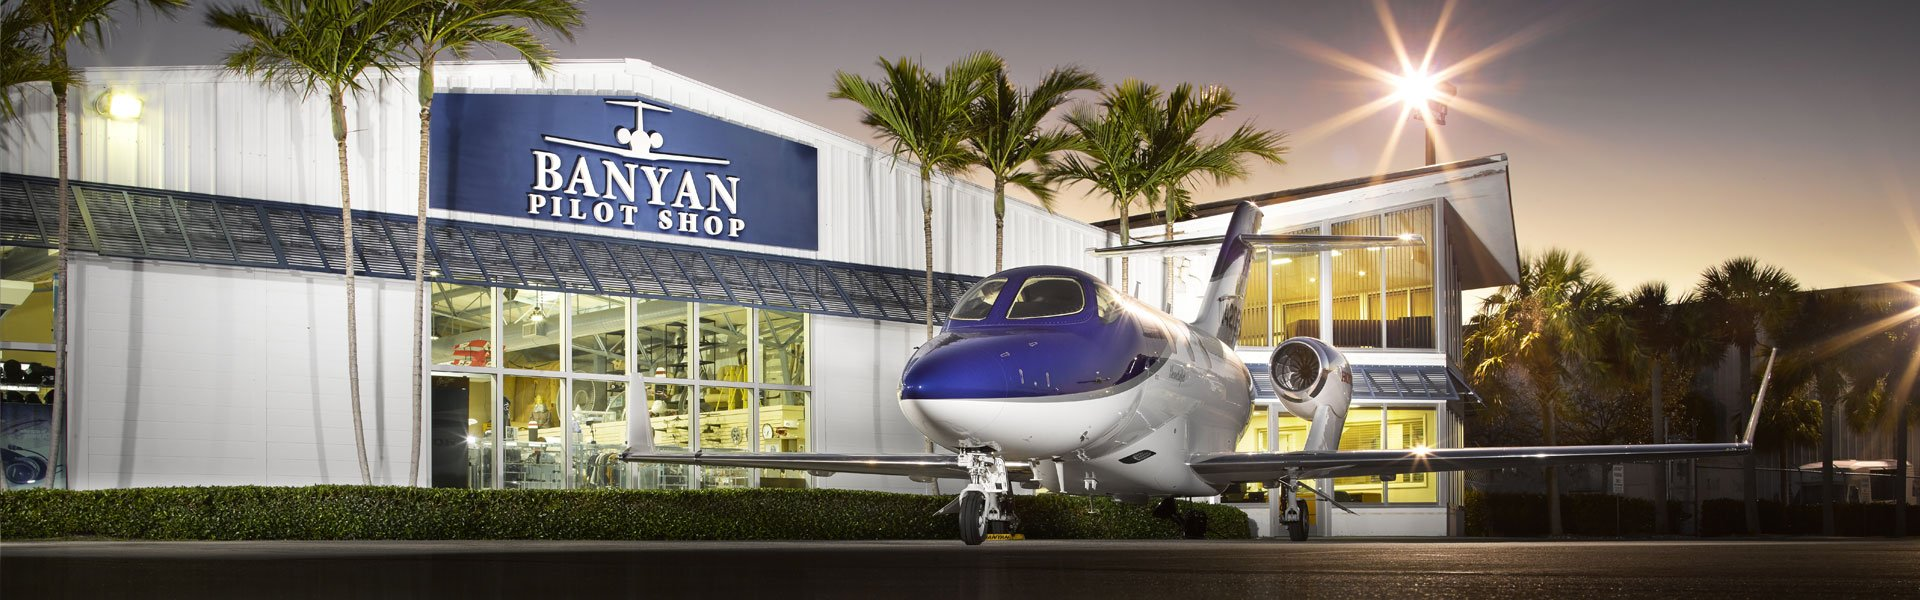 HondaJet parked at Banyan Pilot Shop